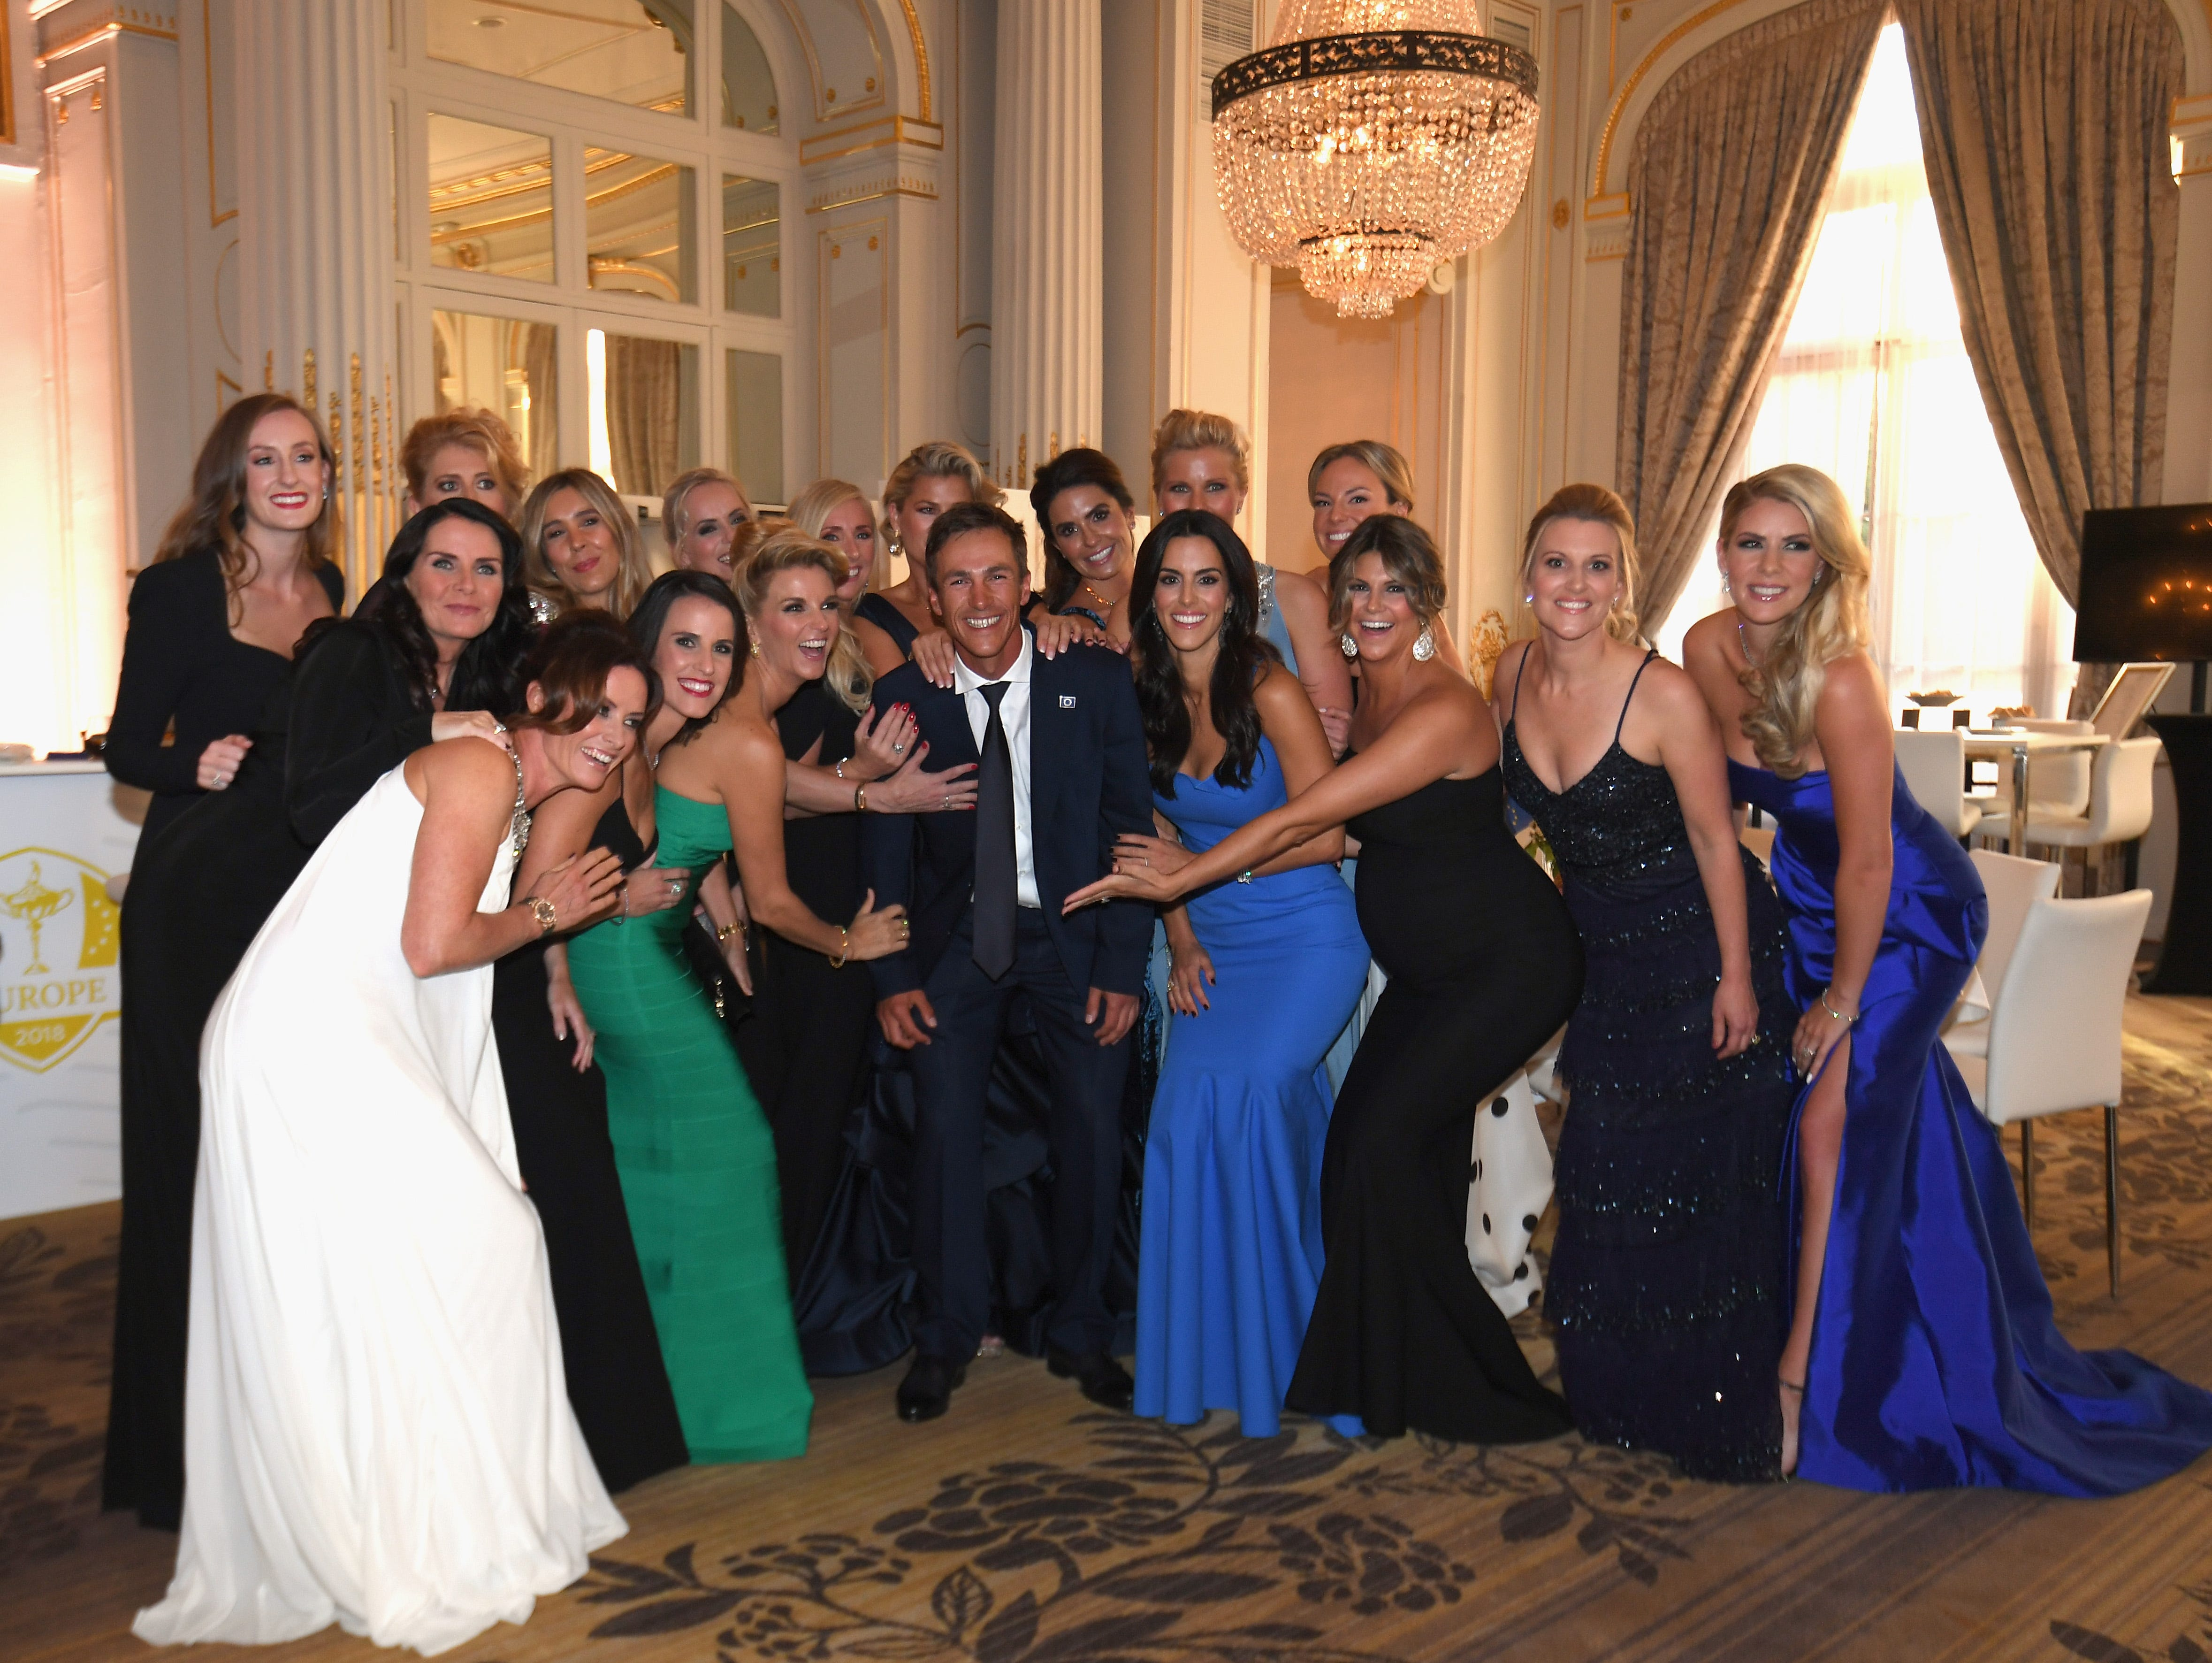 Thorbjorn Olesen of Europe poses with player's wives and partners prior to the 2018 Ryder Cup gala.